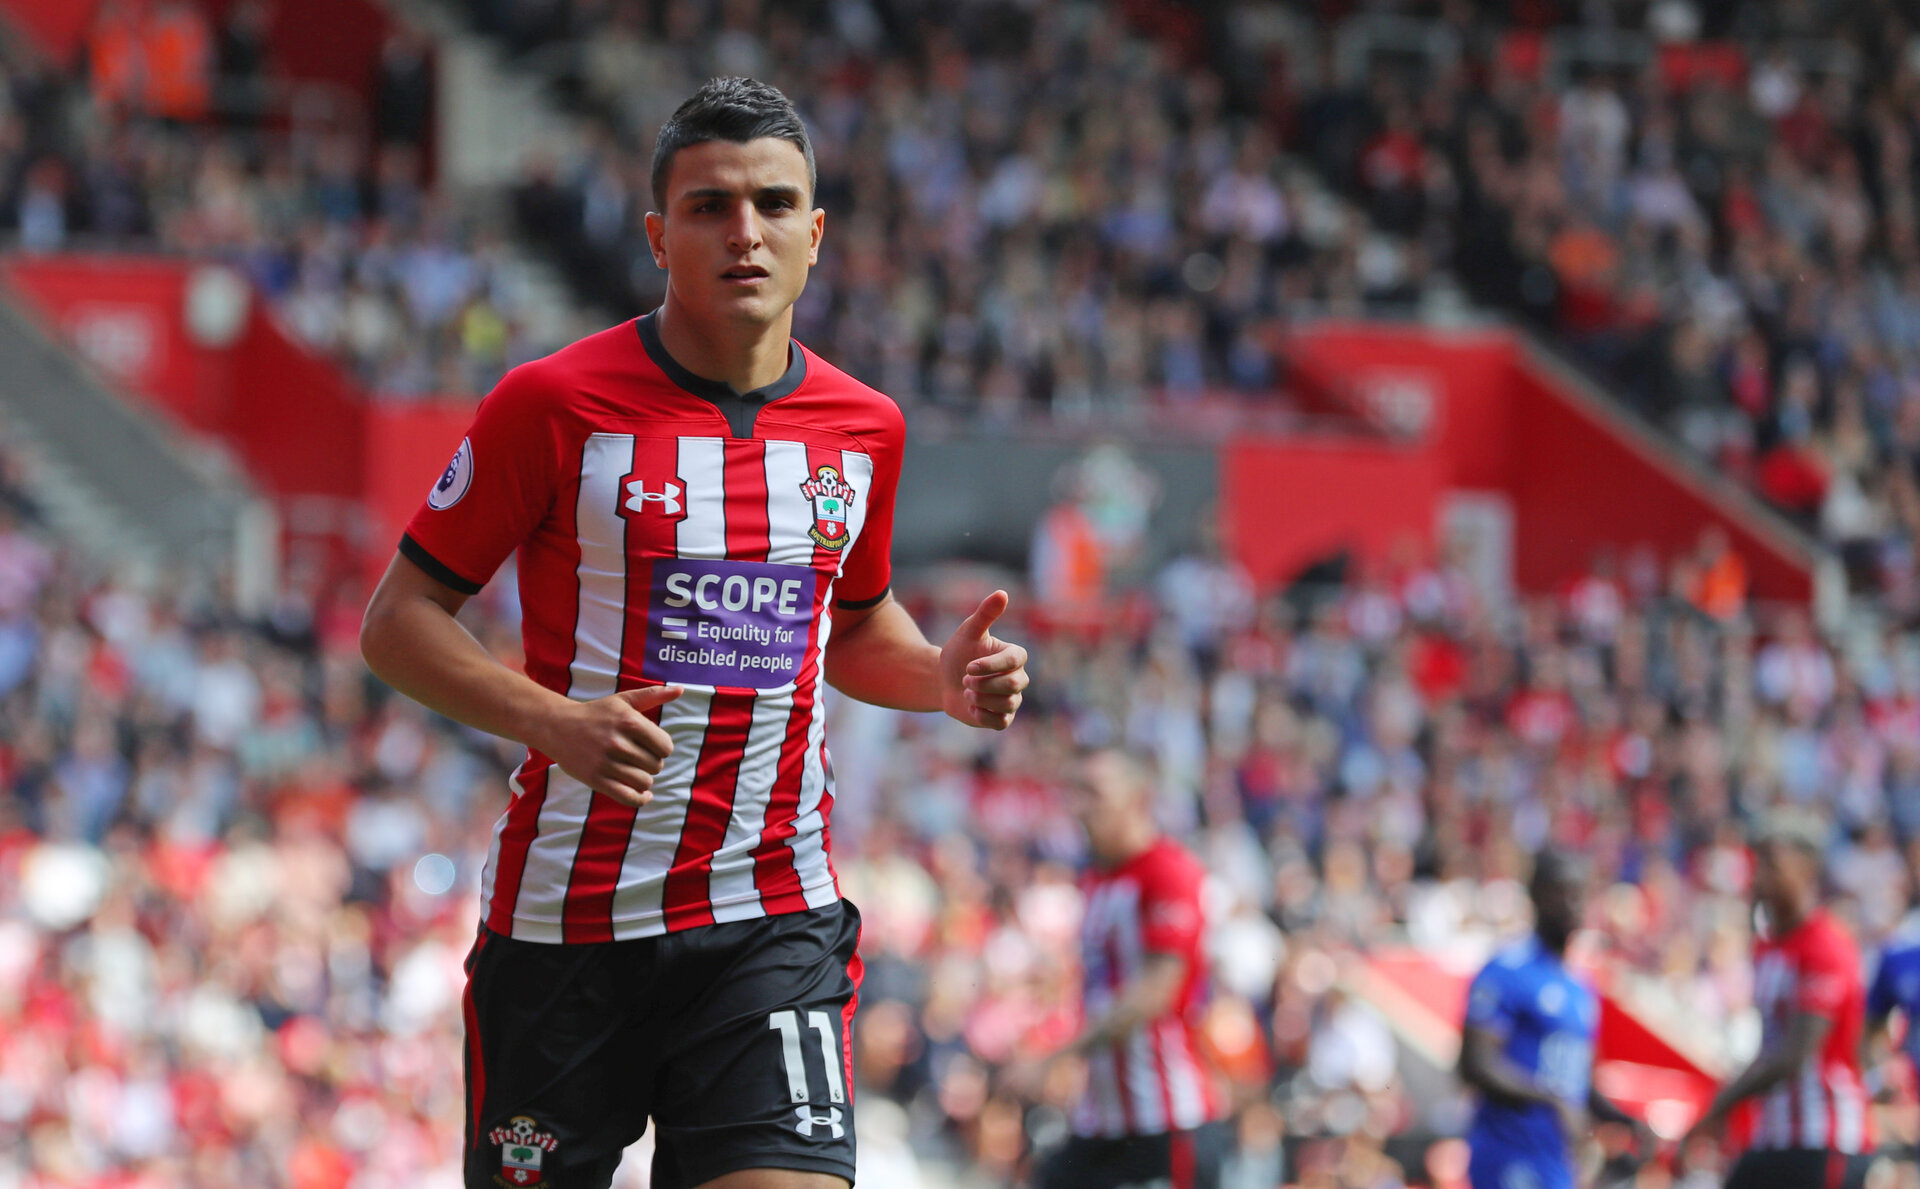 SOUTHAMPTON, ENGLAND - AUGUST 25: Mohamed Elyounoussi of Southampton during the Premier League match between Southampton FC and Leicester City at St Mary's Stadium on August 25, 2018 in Southampton, United Kingdom. (Photo by Matt Watson/Southampton FC via Getty Images)